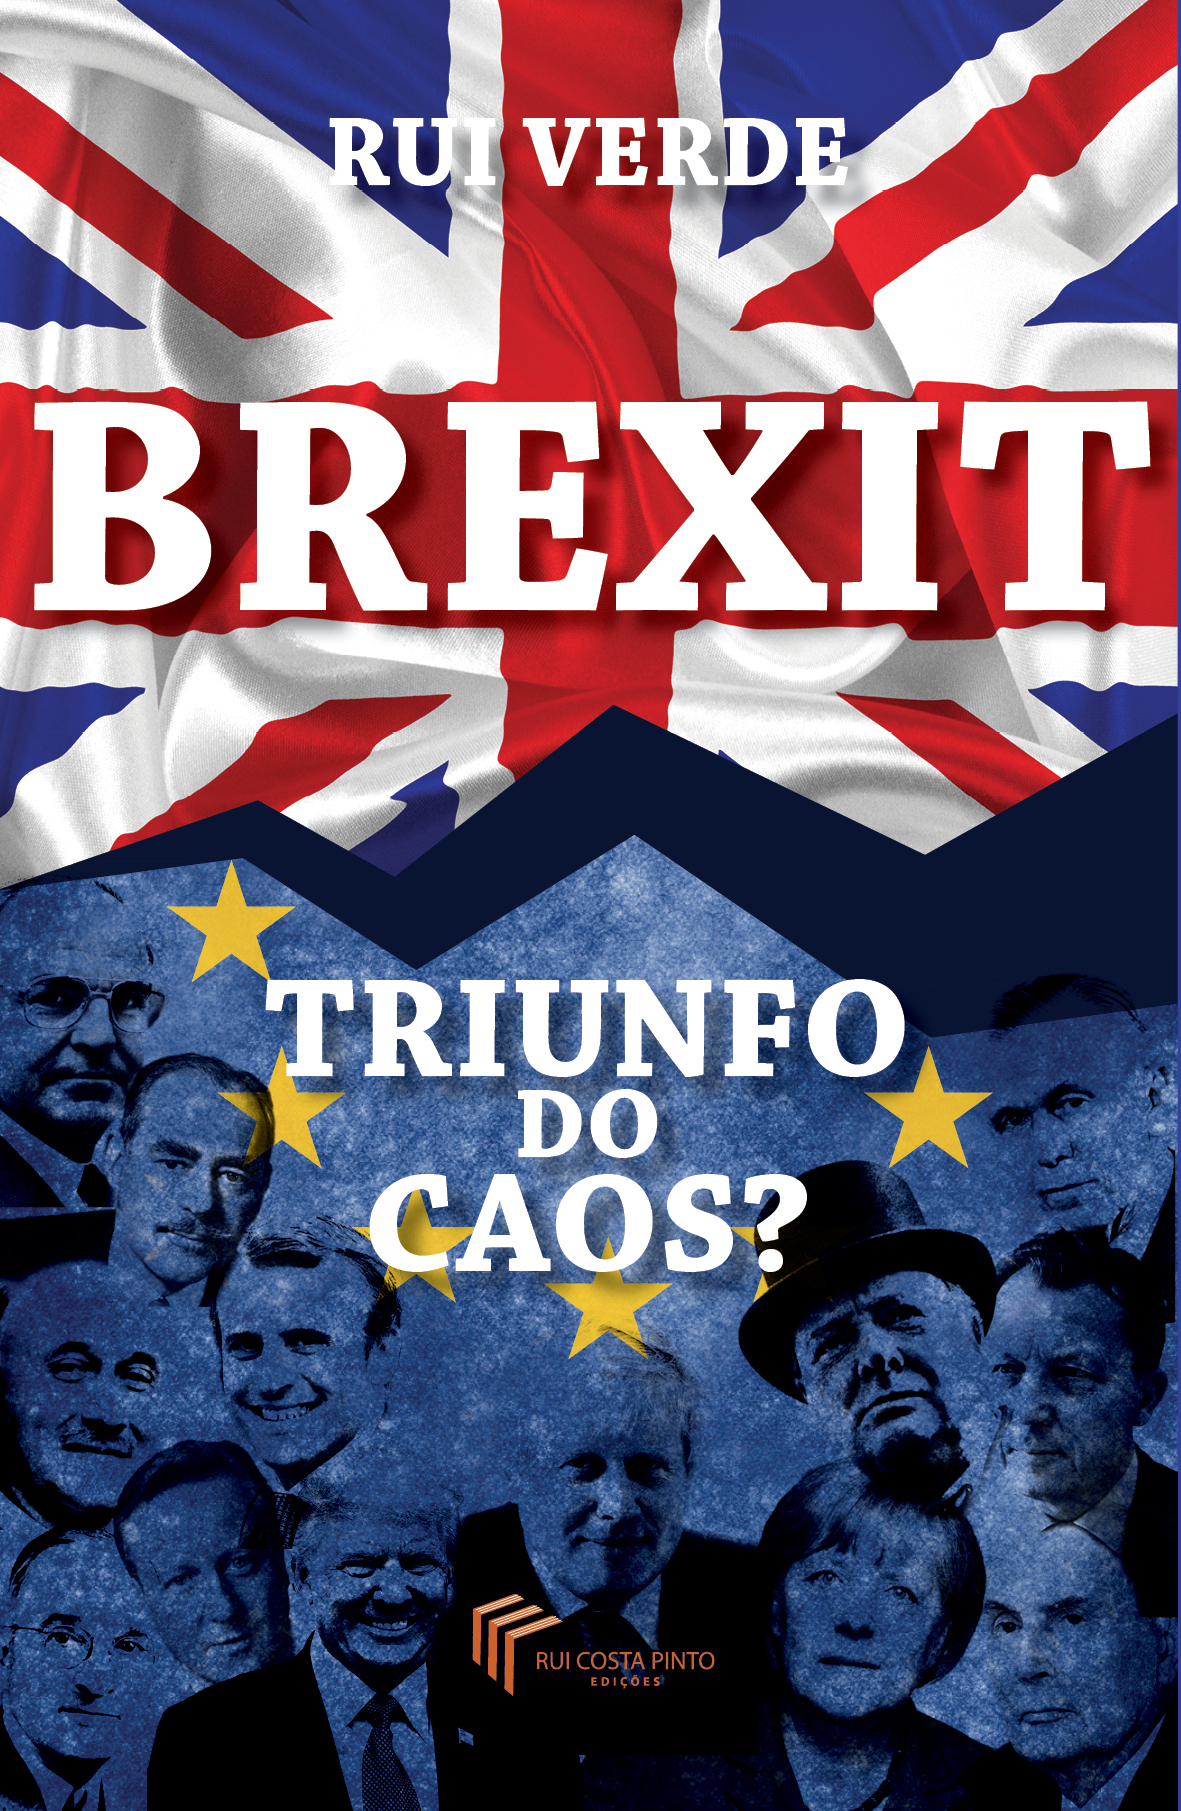 The Academic Union of Oxford recommends a new book about Brexit